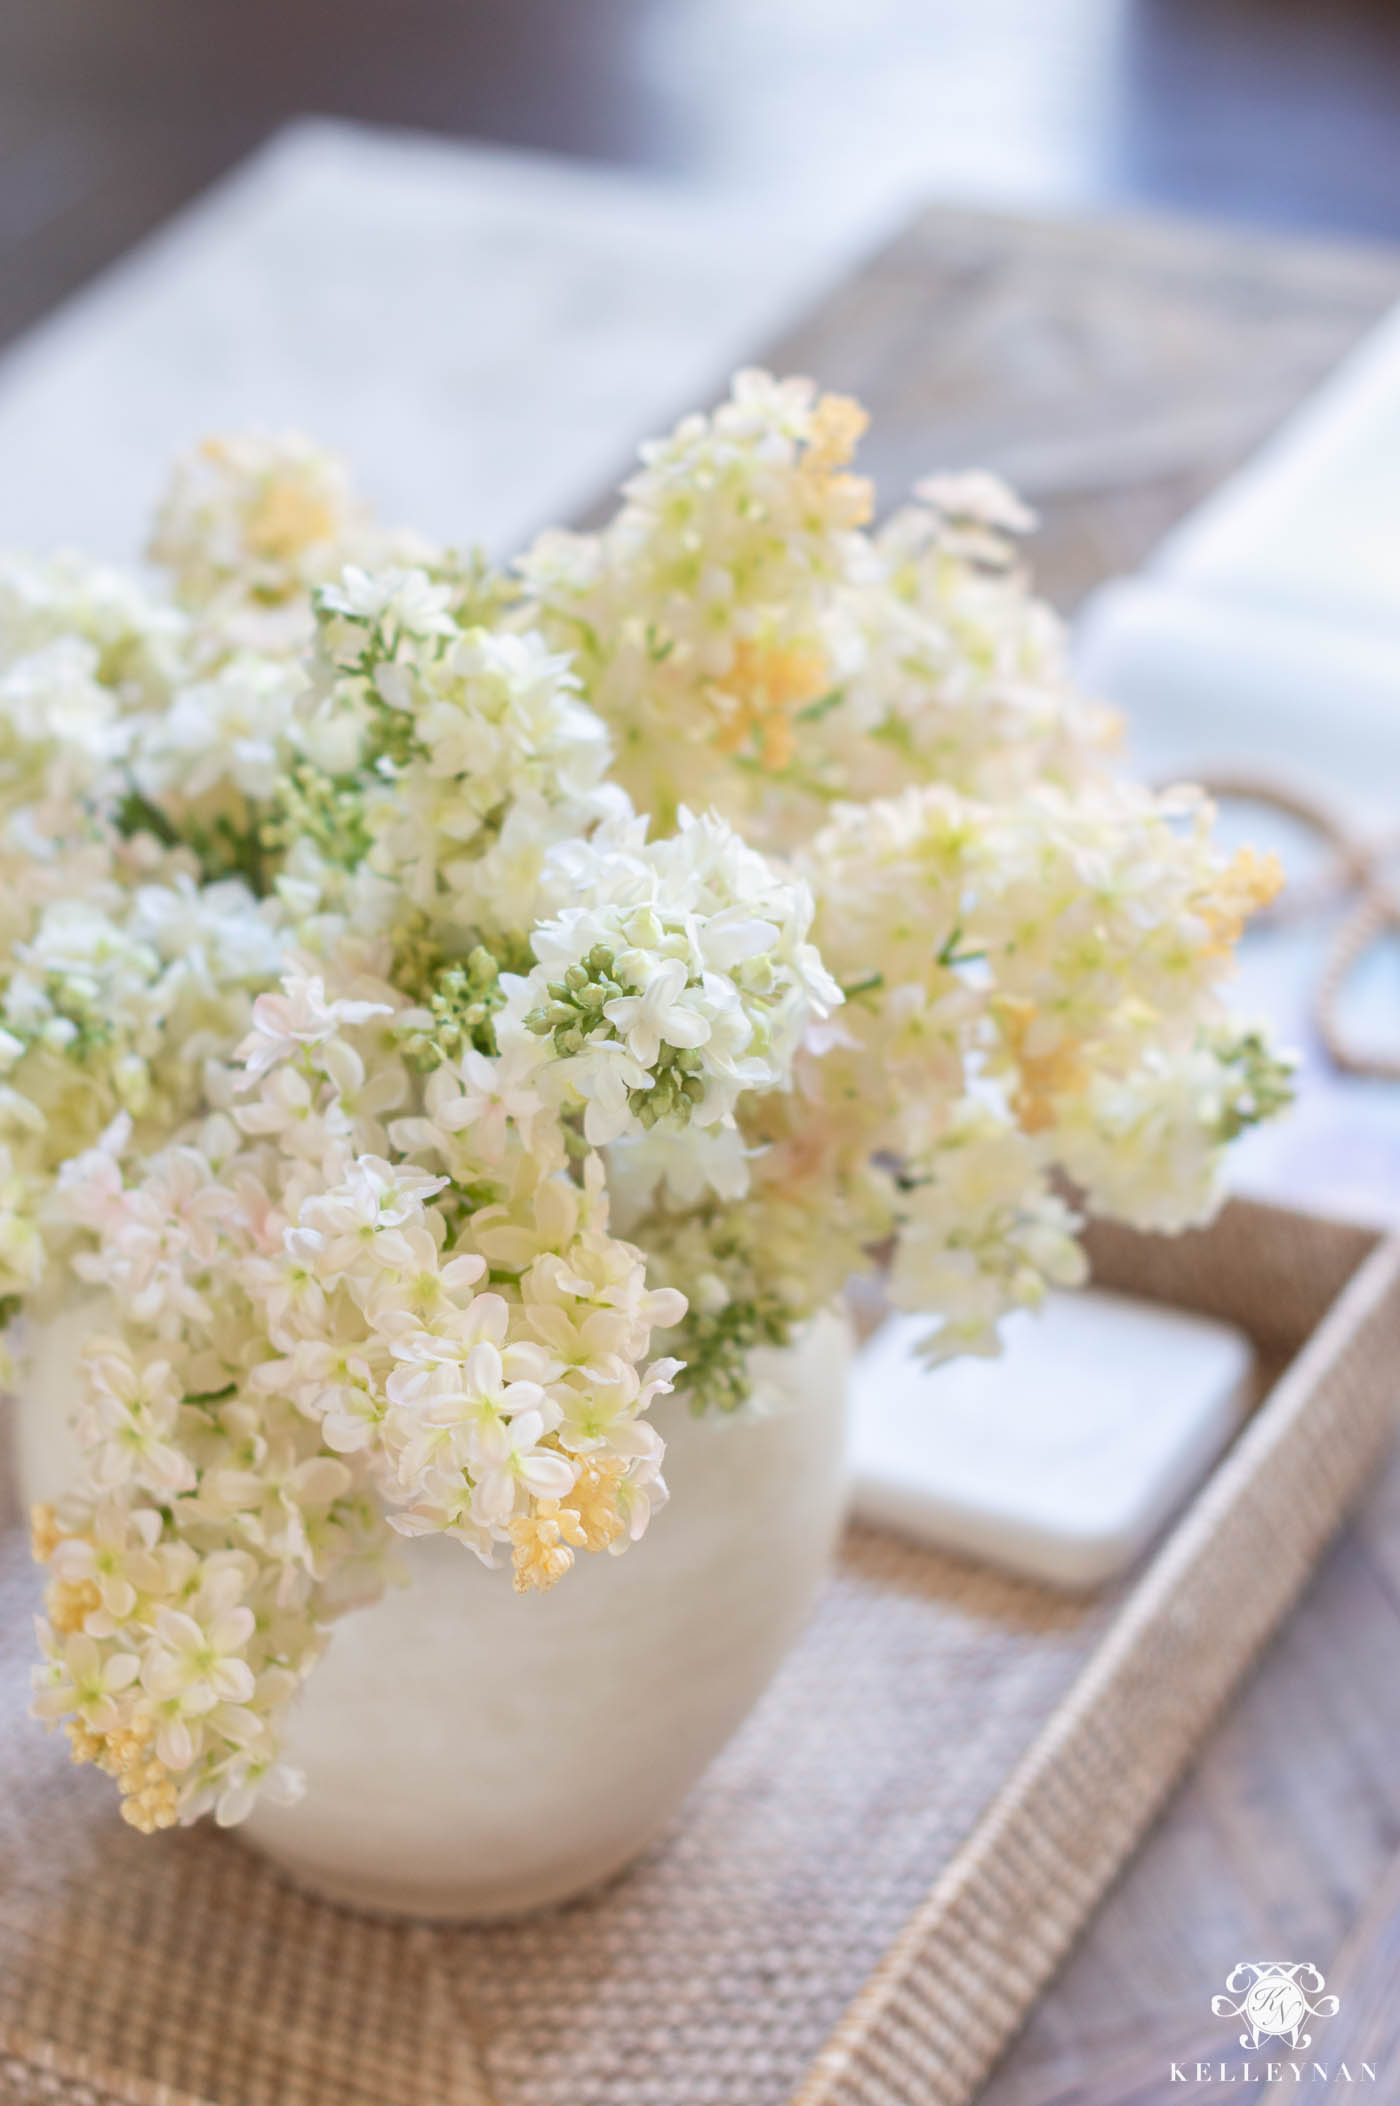 The Most Realistic Looking Fake Flowers (and how to arrange them!)